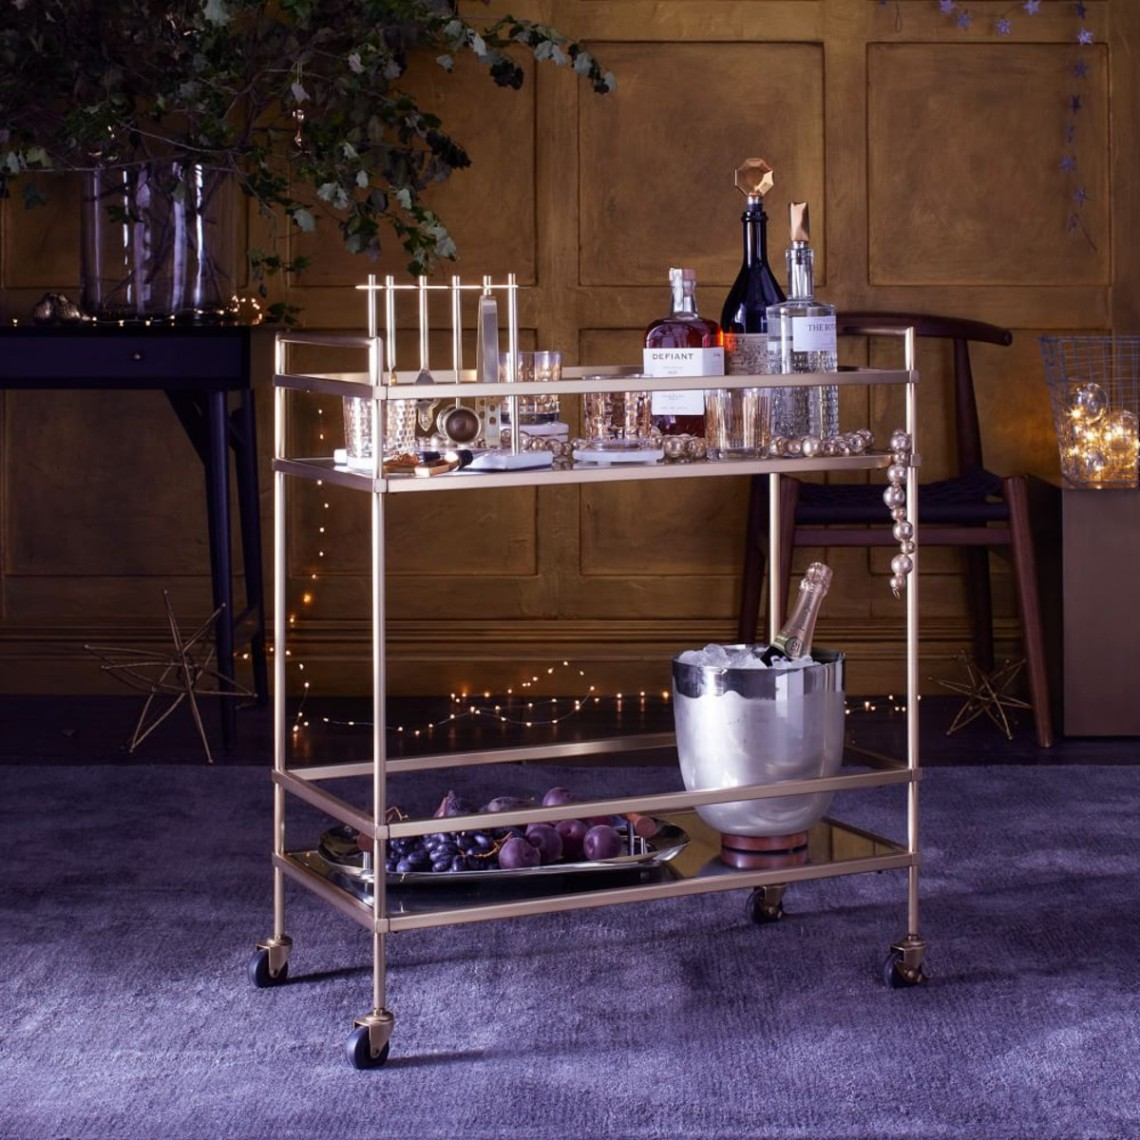 Mother's Day gift guide - West Elm terrace bar cart